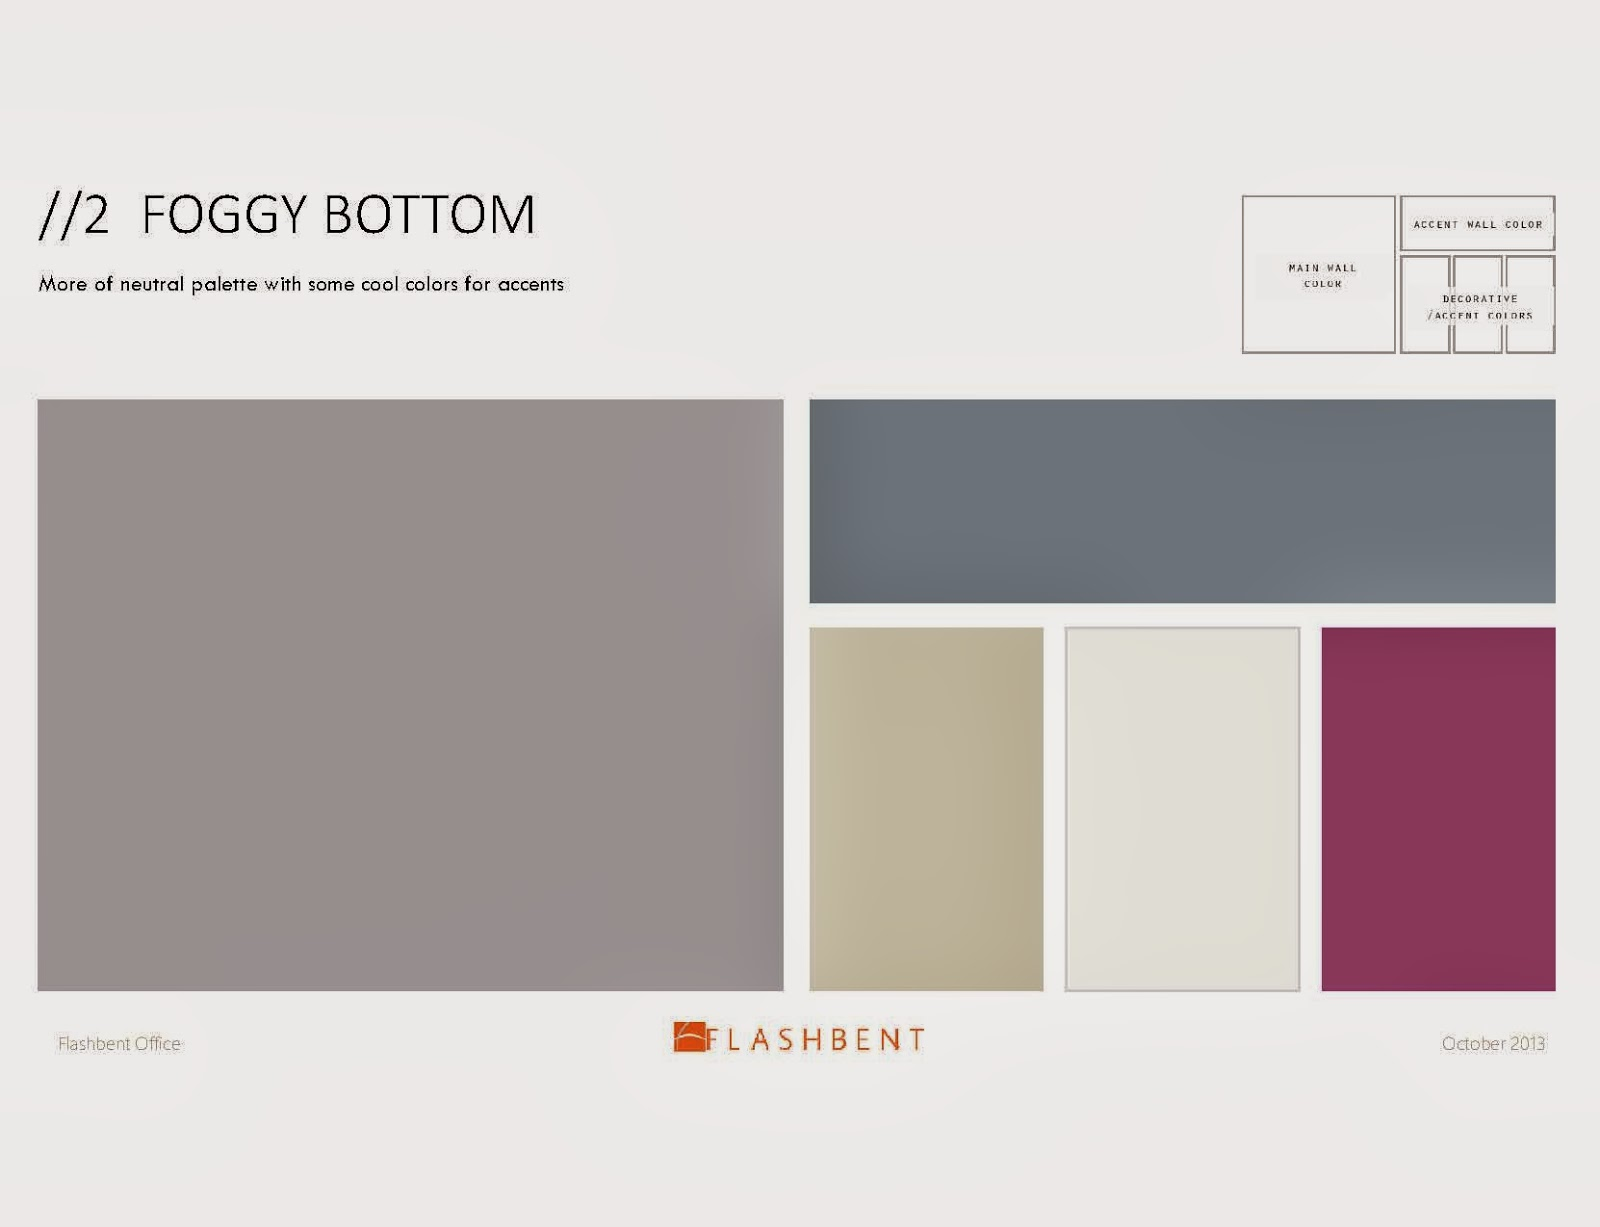 Inside the frame for Bright neutral paint colors